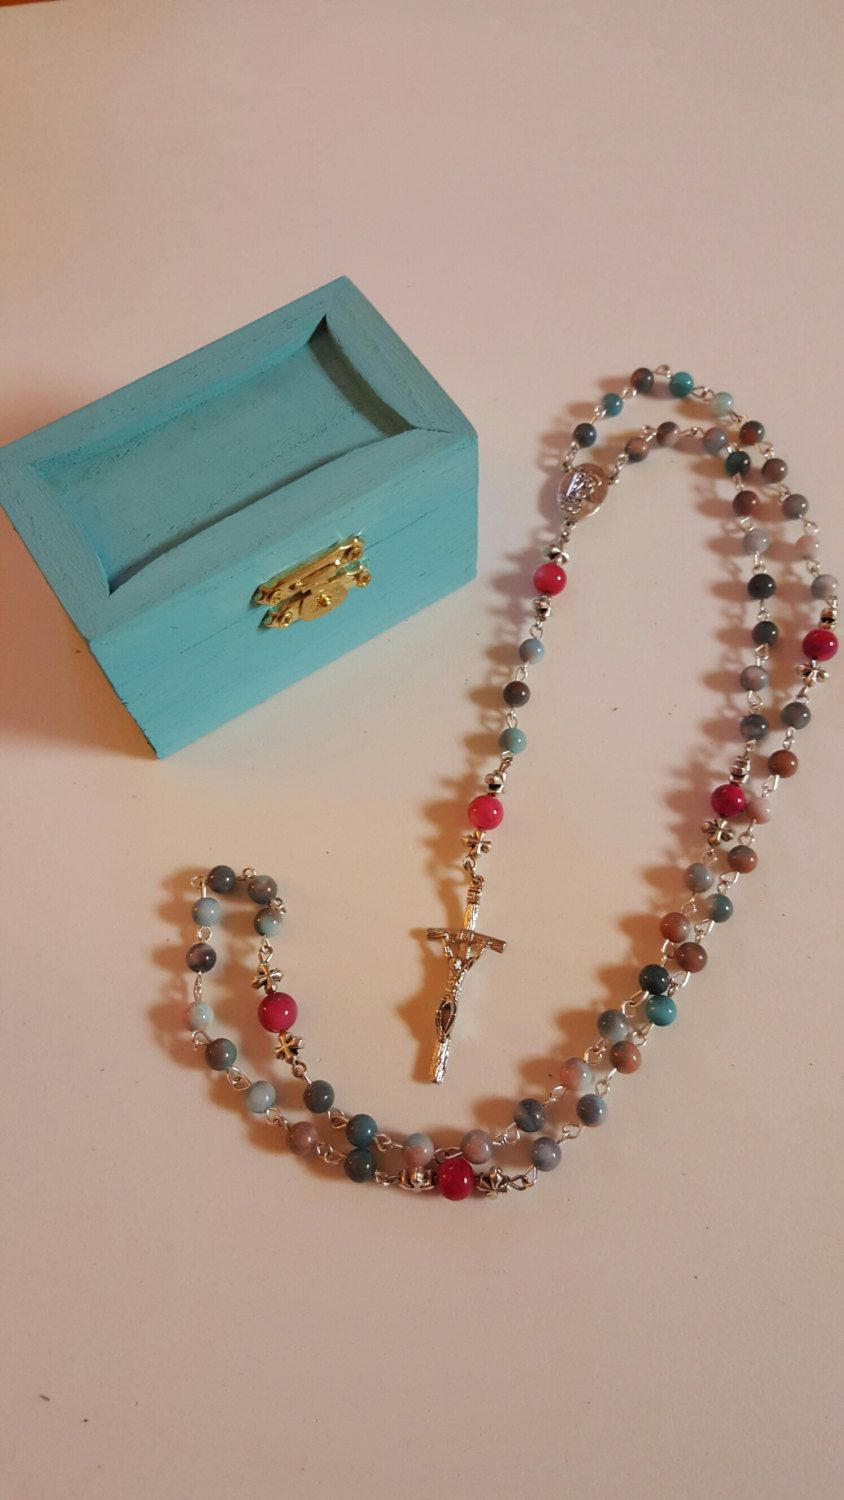 On Sale Now!! Catholic Rosary in multi-color Jasper! Coupon Code LENT2016 for additional savings!! by AutumnsBlessing on Etsy